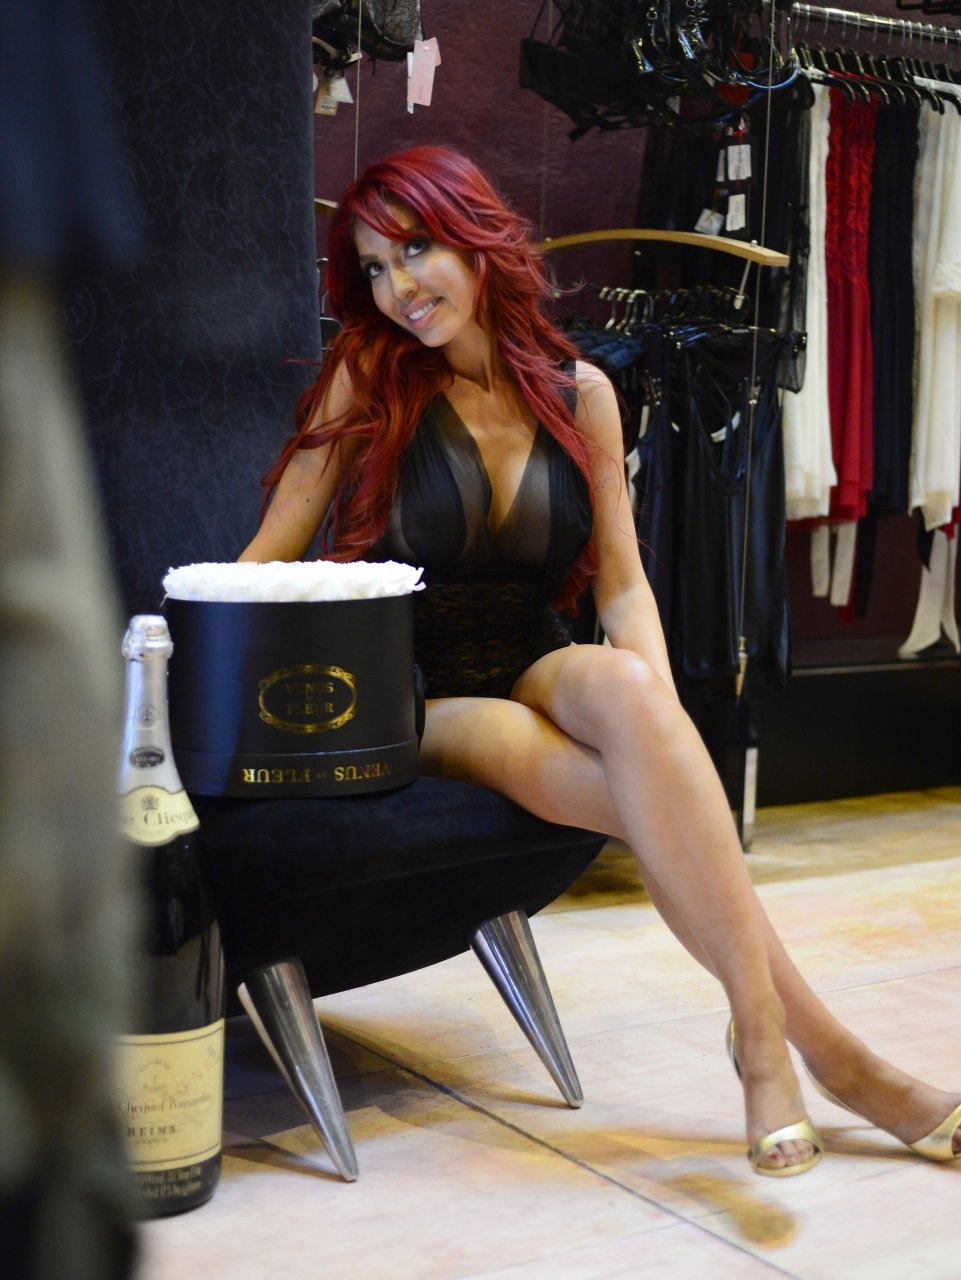 Farrah-Abraham-See-Through-49-The-Fappening-Blog.jpg